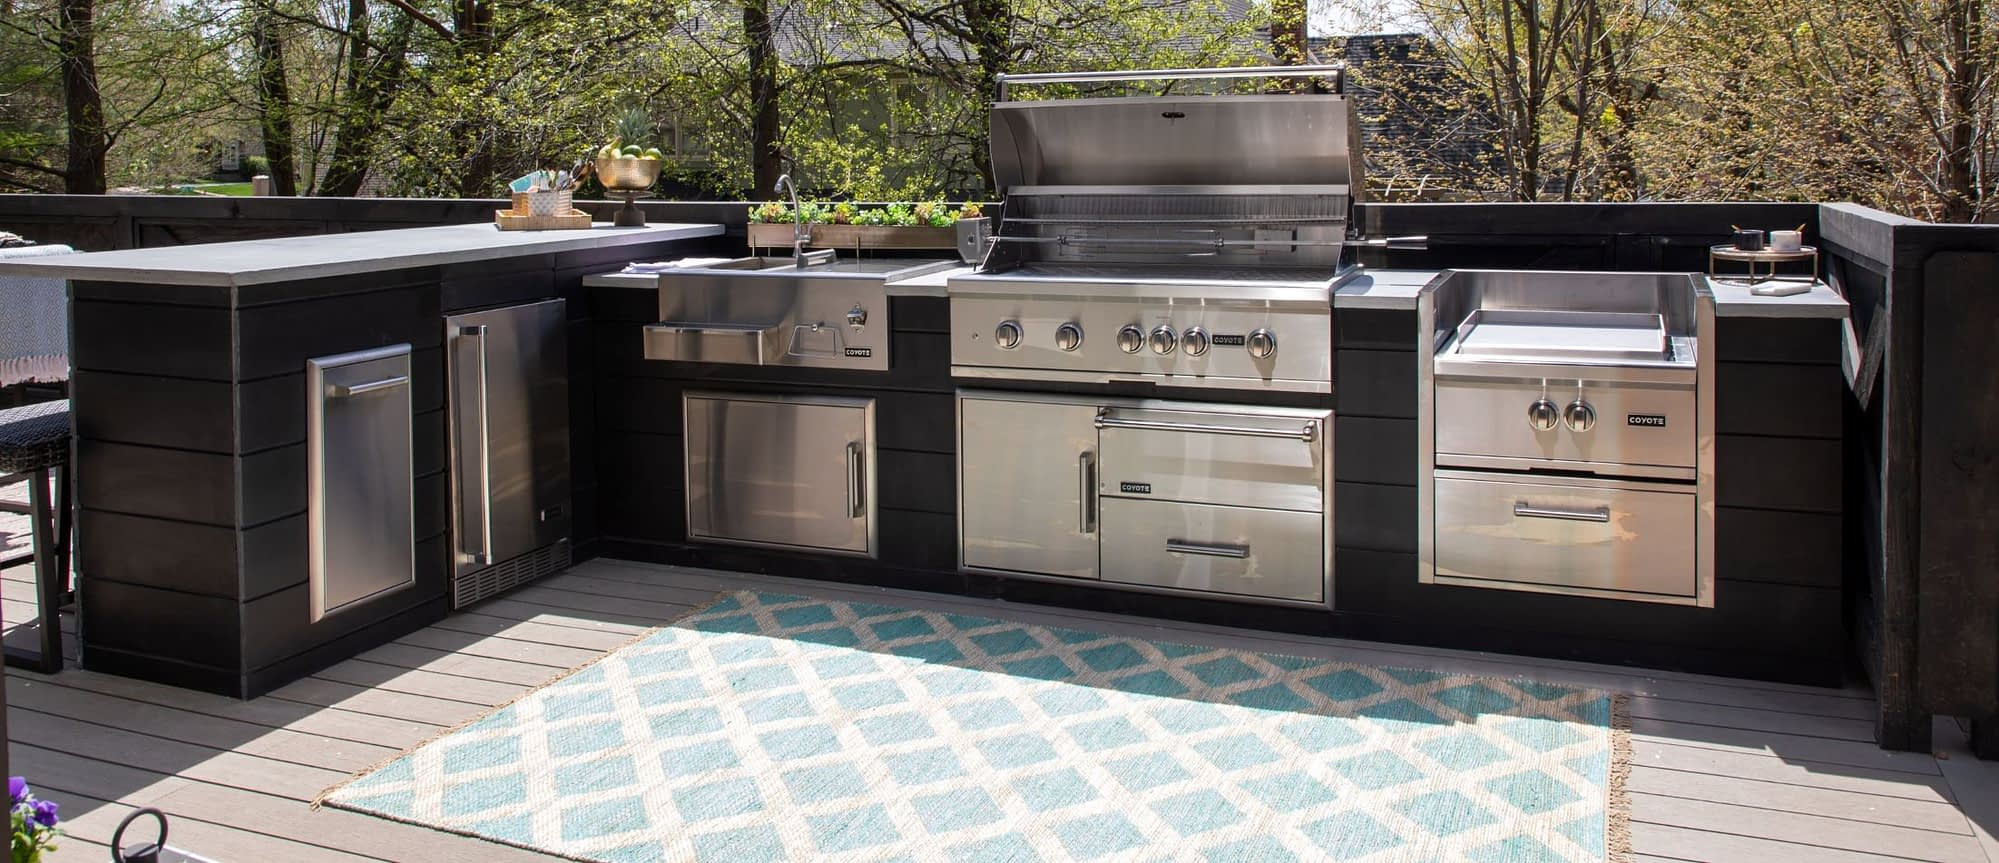 l-shape outdoor kitchen by rta outdoor living